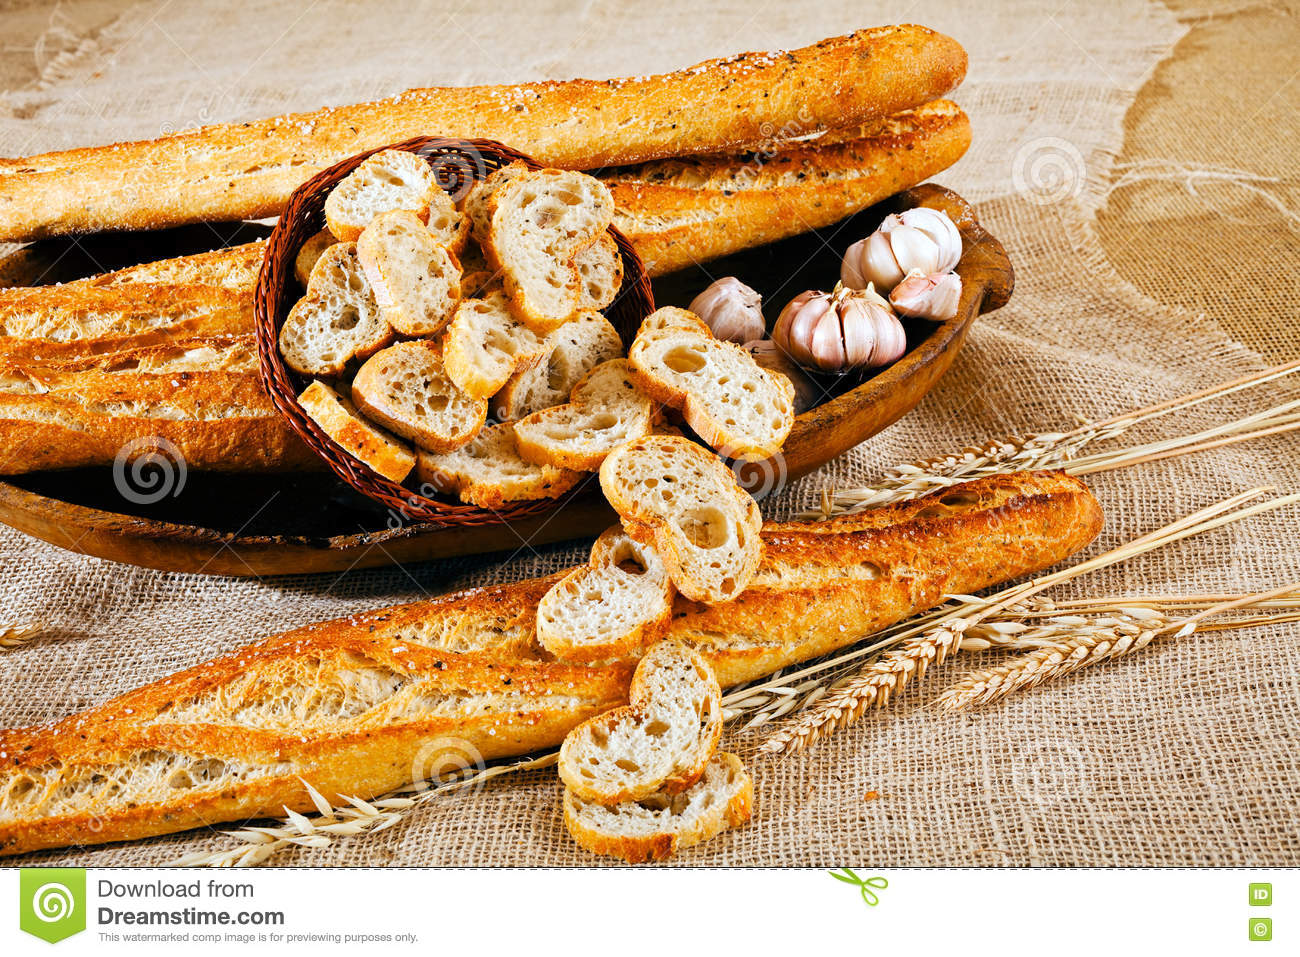 Baguette De Décoration Decoration With Baguette Bread Stock Image Image Of Baguette